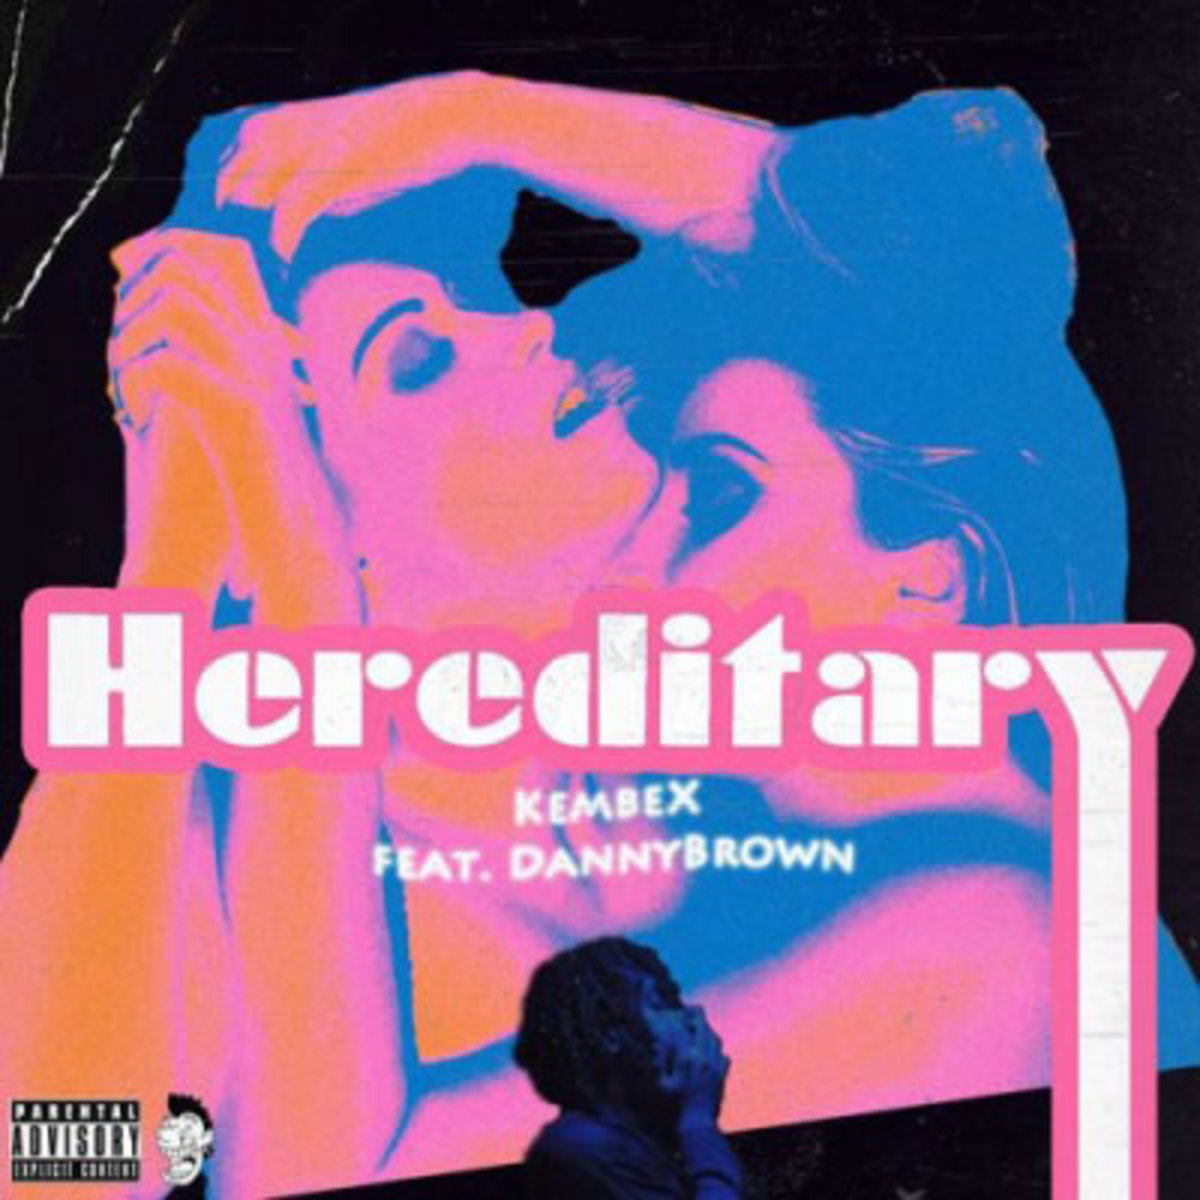 kembe-x-hereditary-2-bitches.jpg